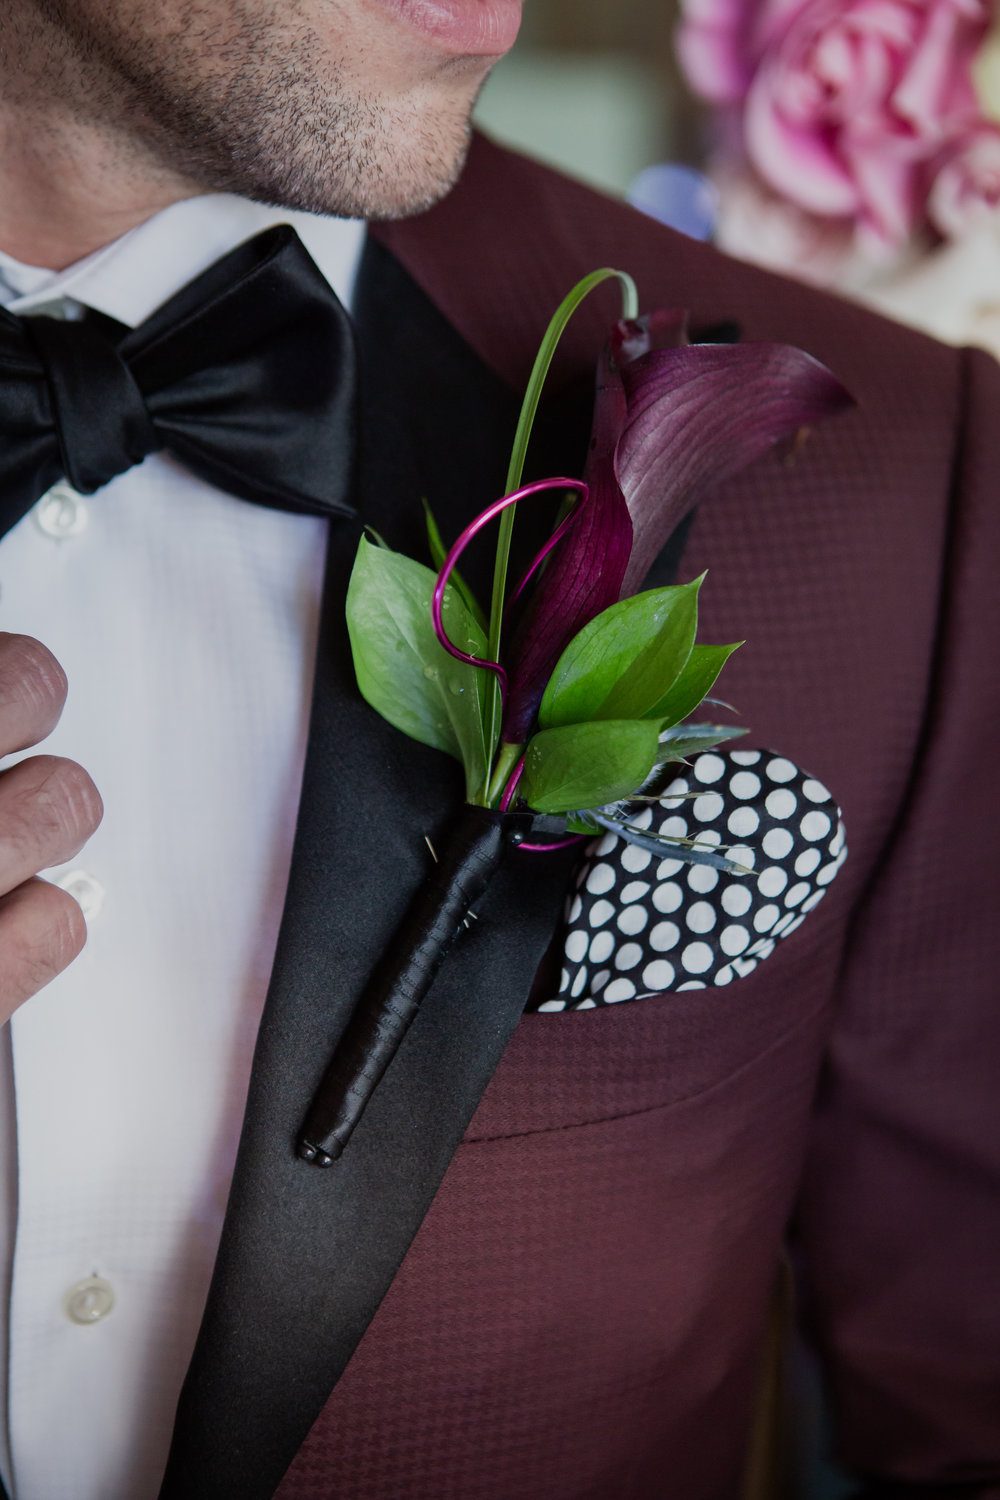 Dark purple calla Lilly boutonniere. Maroon tuxedo. Las Vegas Wedding Planner & Event Designer  Andrea Eppolito Events  · Photography by  Adam Frazier Photo  · Video by  M Place Productions  · Floral & Decor by  DBD Las Vegas  · Venue  ARIA Primrose Ballroom  · Cigar Band by  Royal Cigar Company  and  Jason of Beverly Hills  · Beauty by  Glammed Up Las Vegas  · Dress by  Vera Wang  · Salon  Couture Bride Las Vegas  · Shoes  Bella Belle Shoes  · Bride  Katrina May Armenta  · Groom · Tuxedo